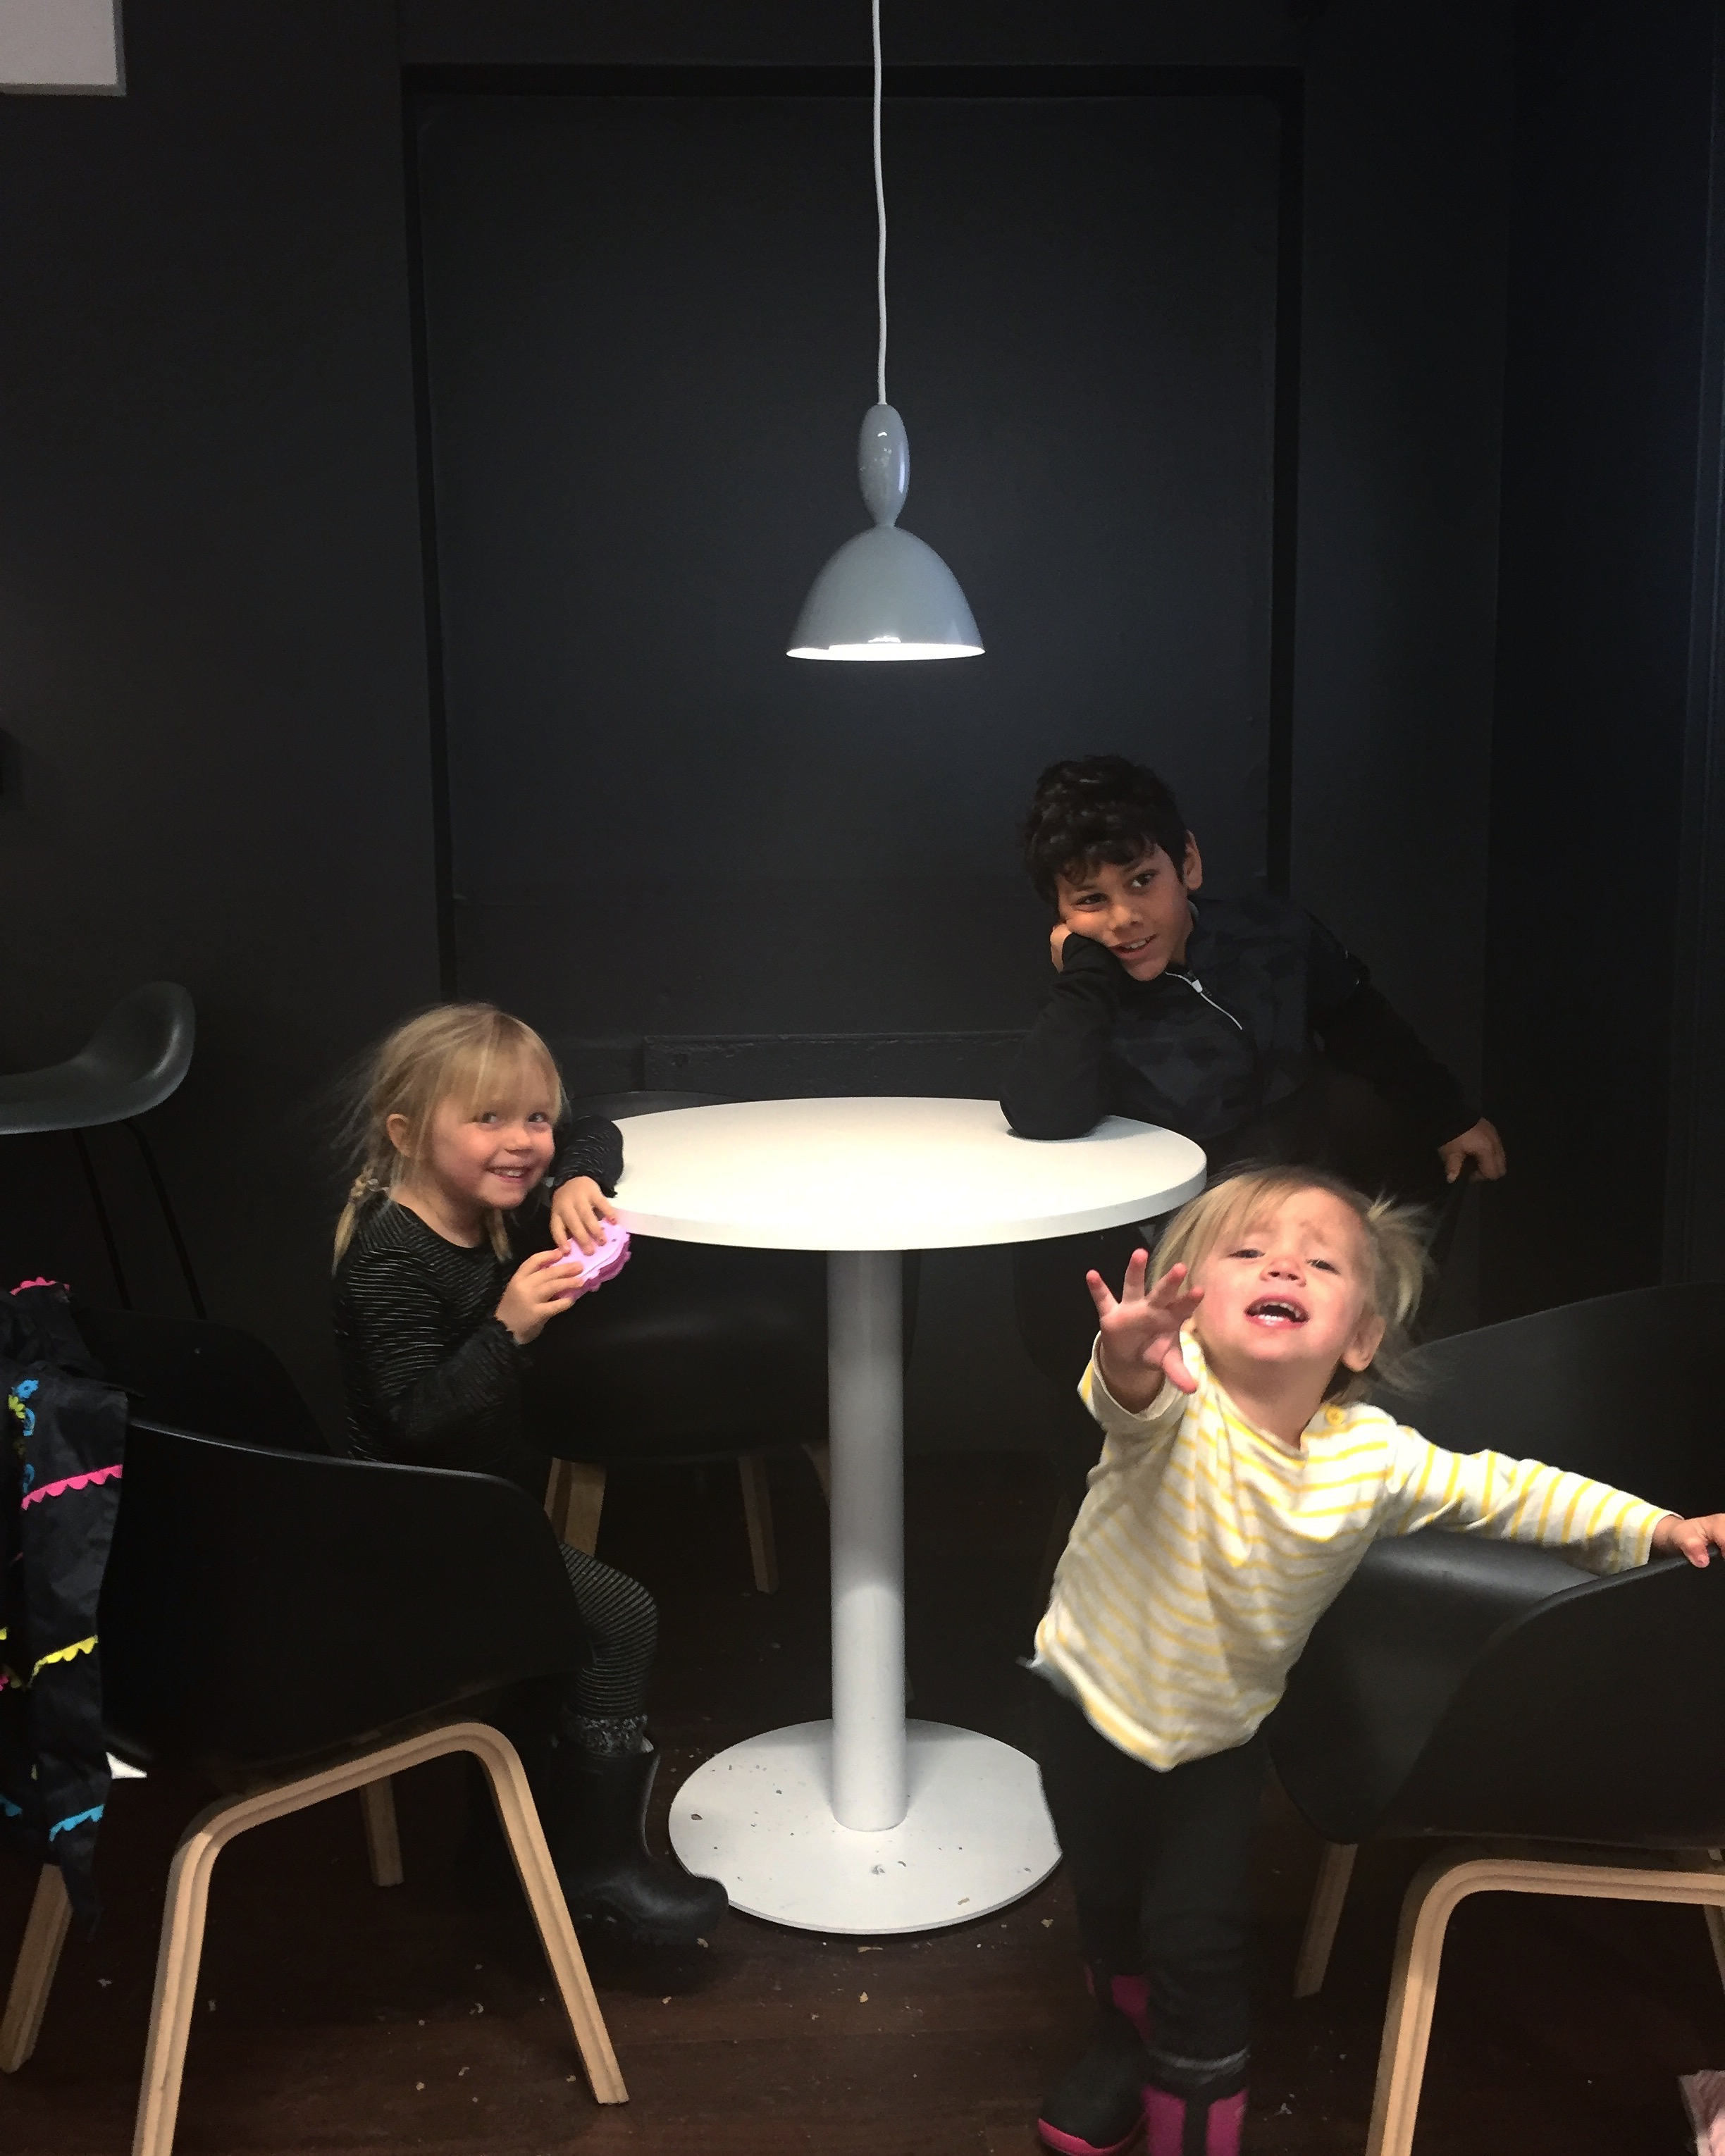 gustation,kids,pika,modern design,scandiic design, modern design,